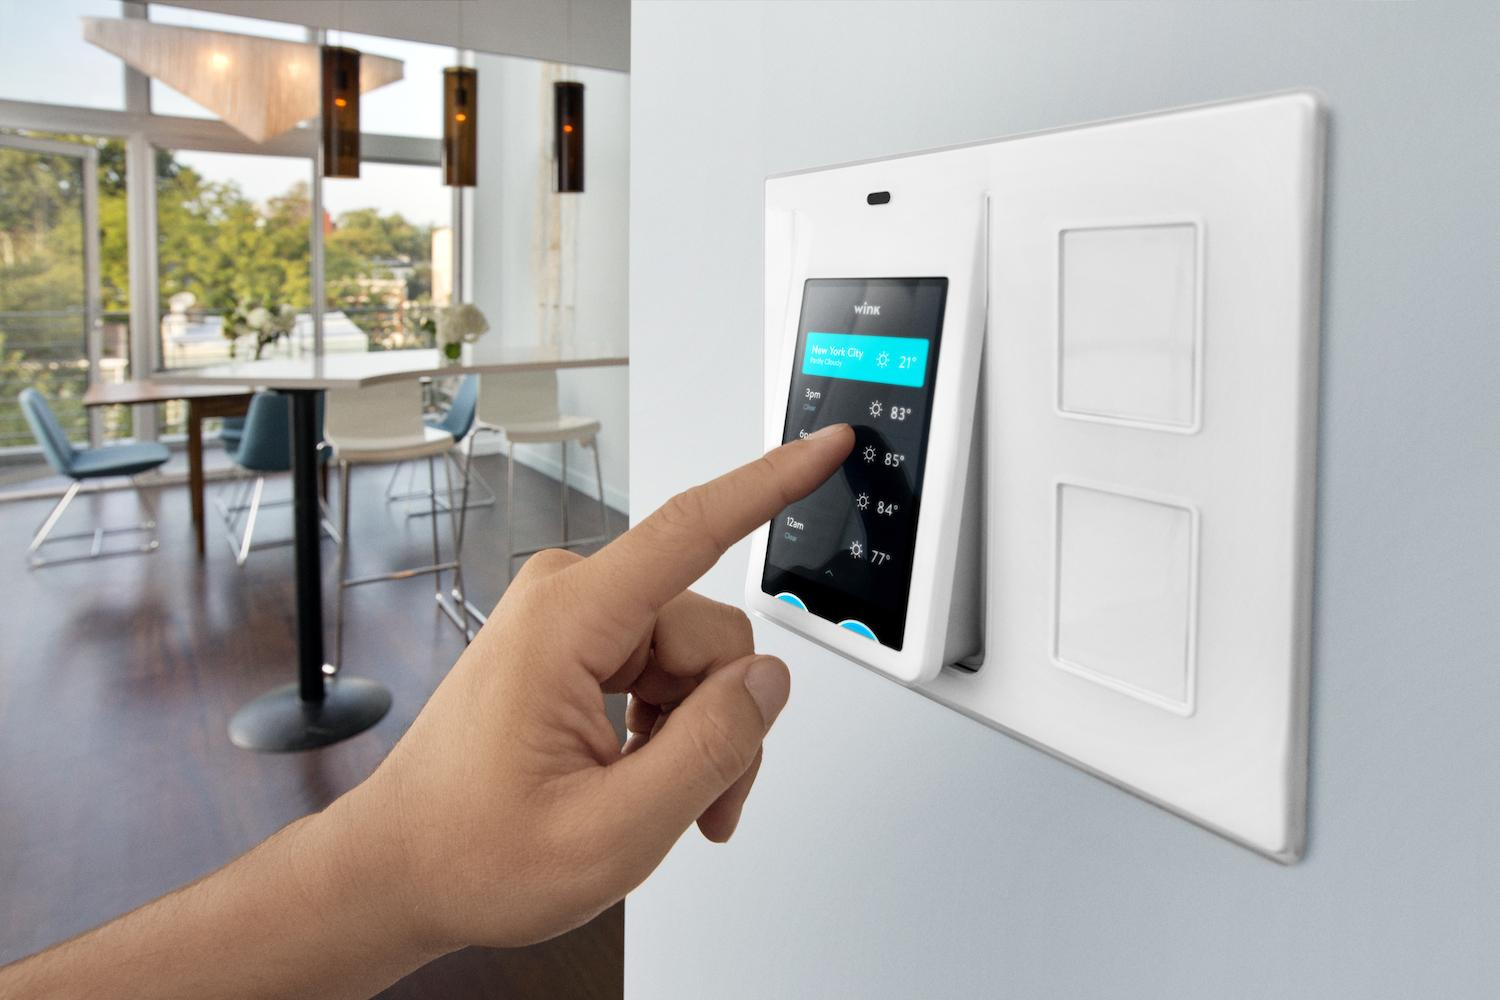 Image by digitaltrends The term smart home